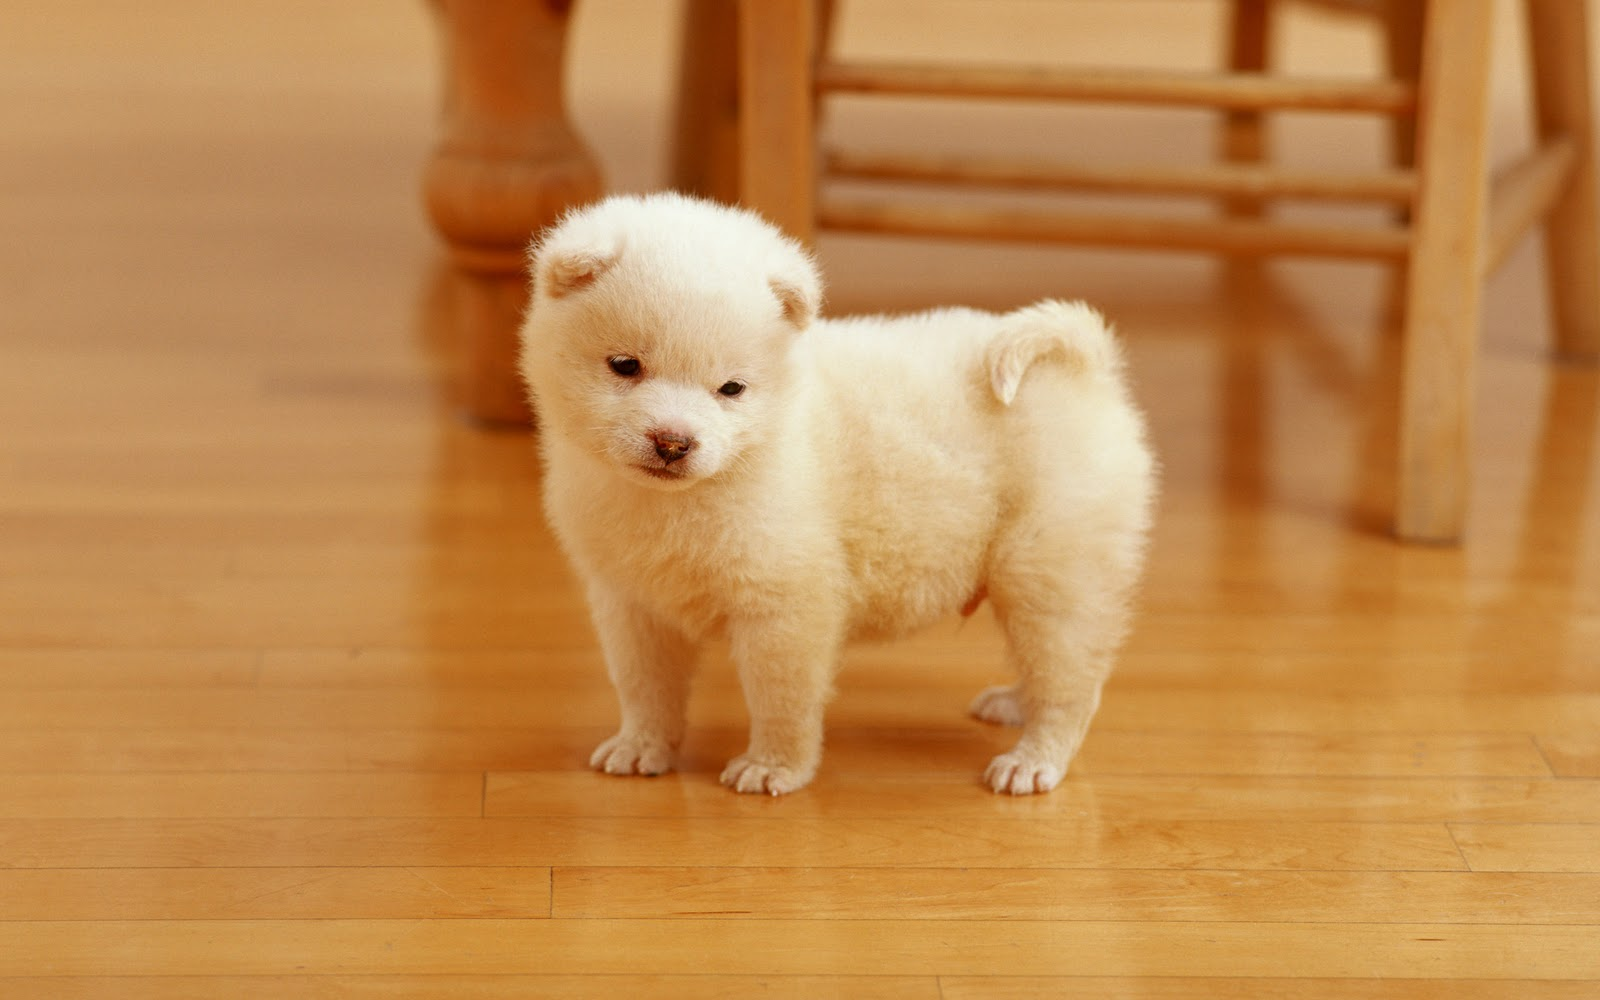 Cutest Puppy Hd Wallpapers Free Download Hd Wallpapers